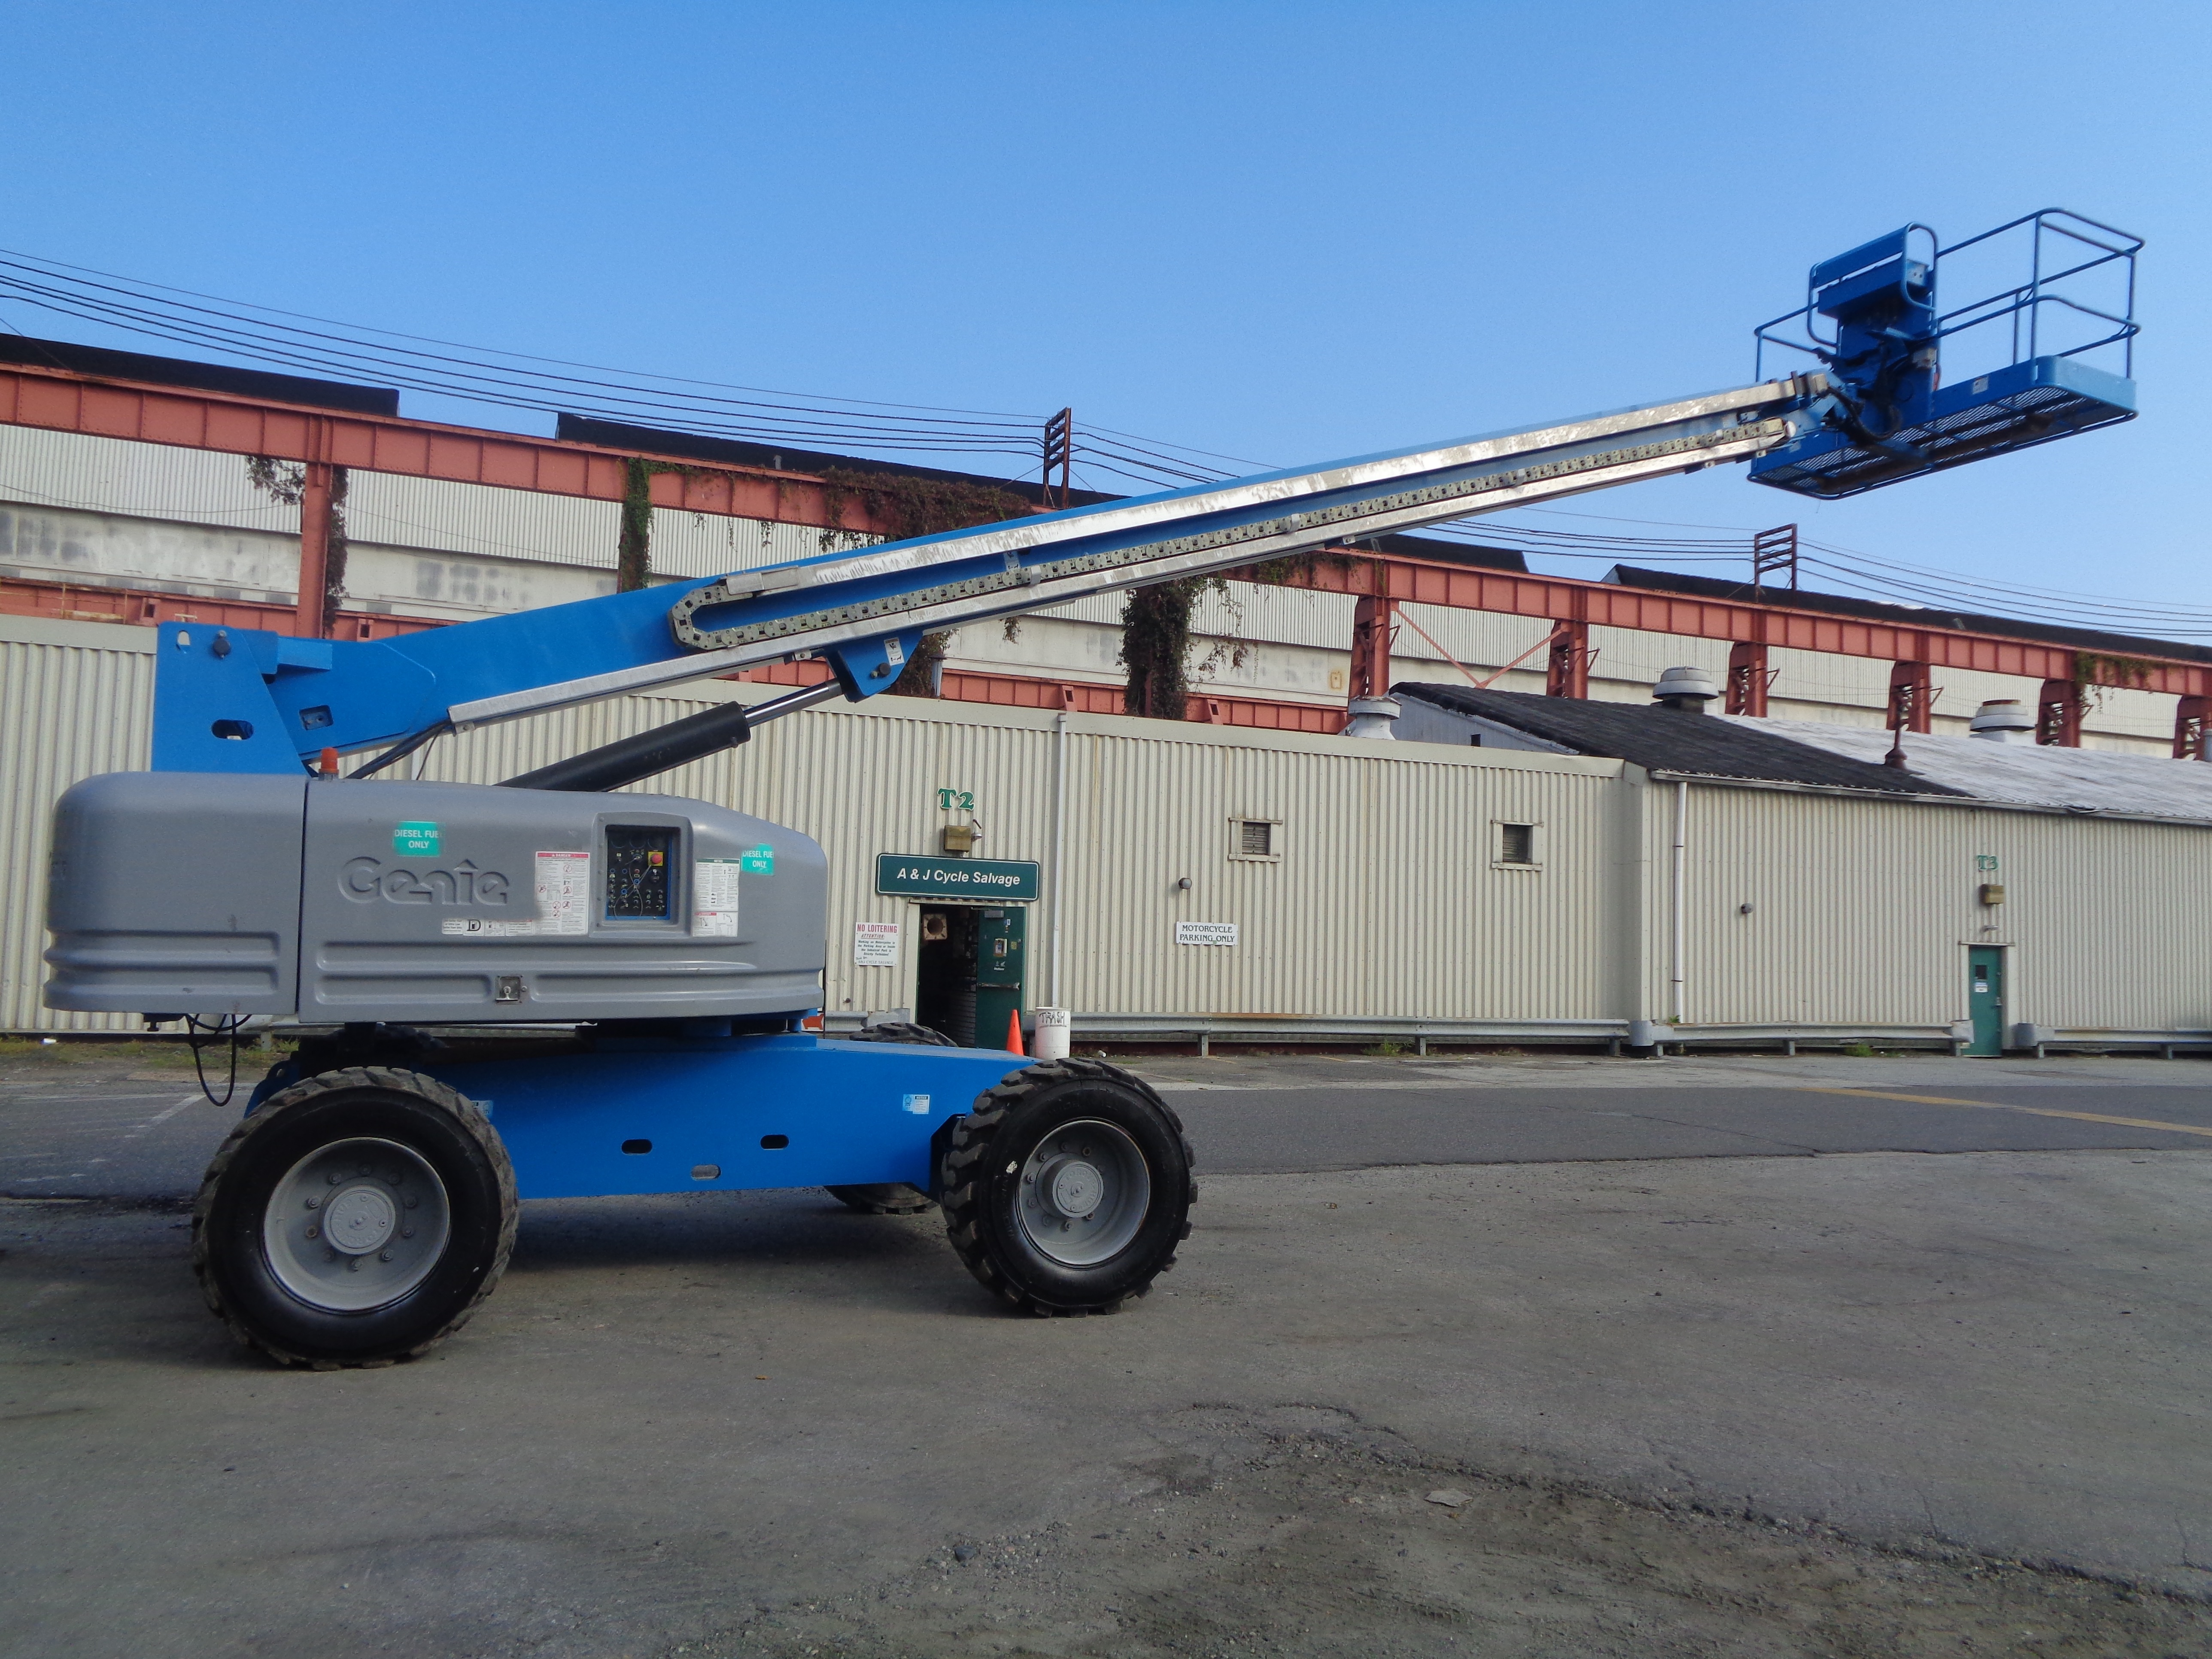 Genie S80 80ft Boom Lift - Image 14 of 22